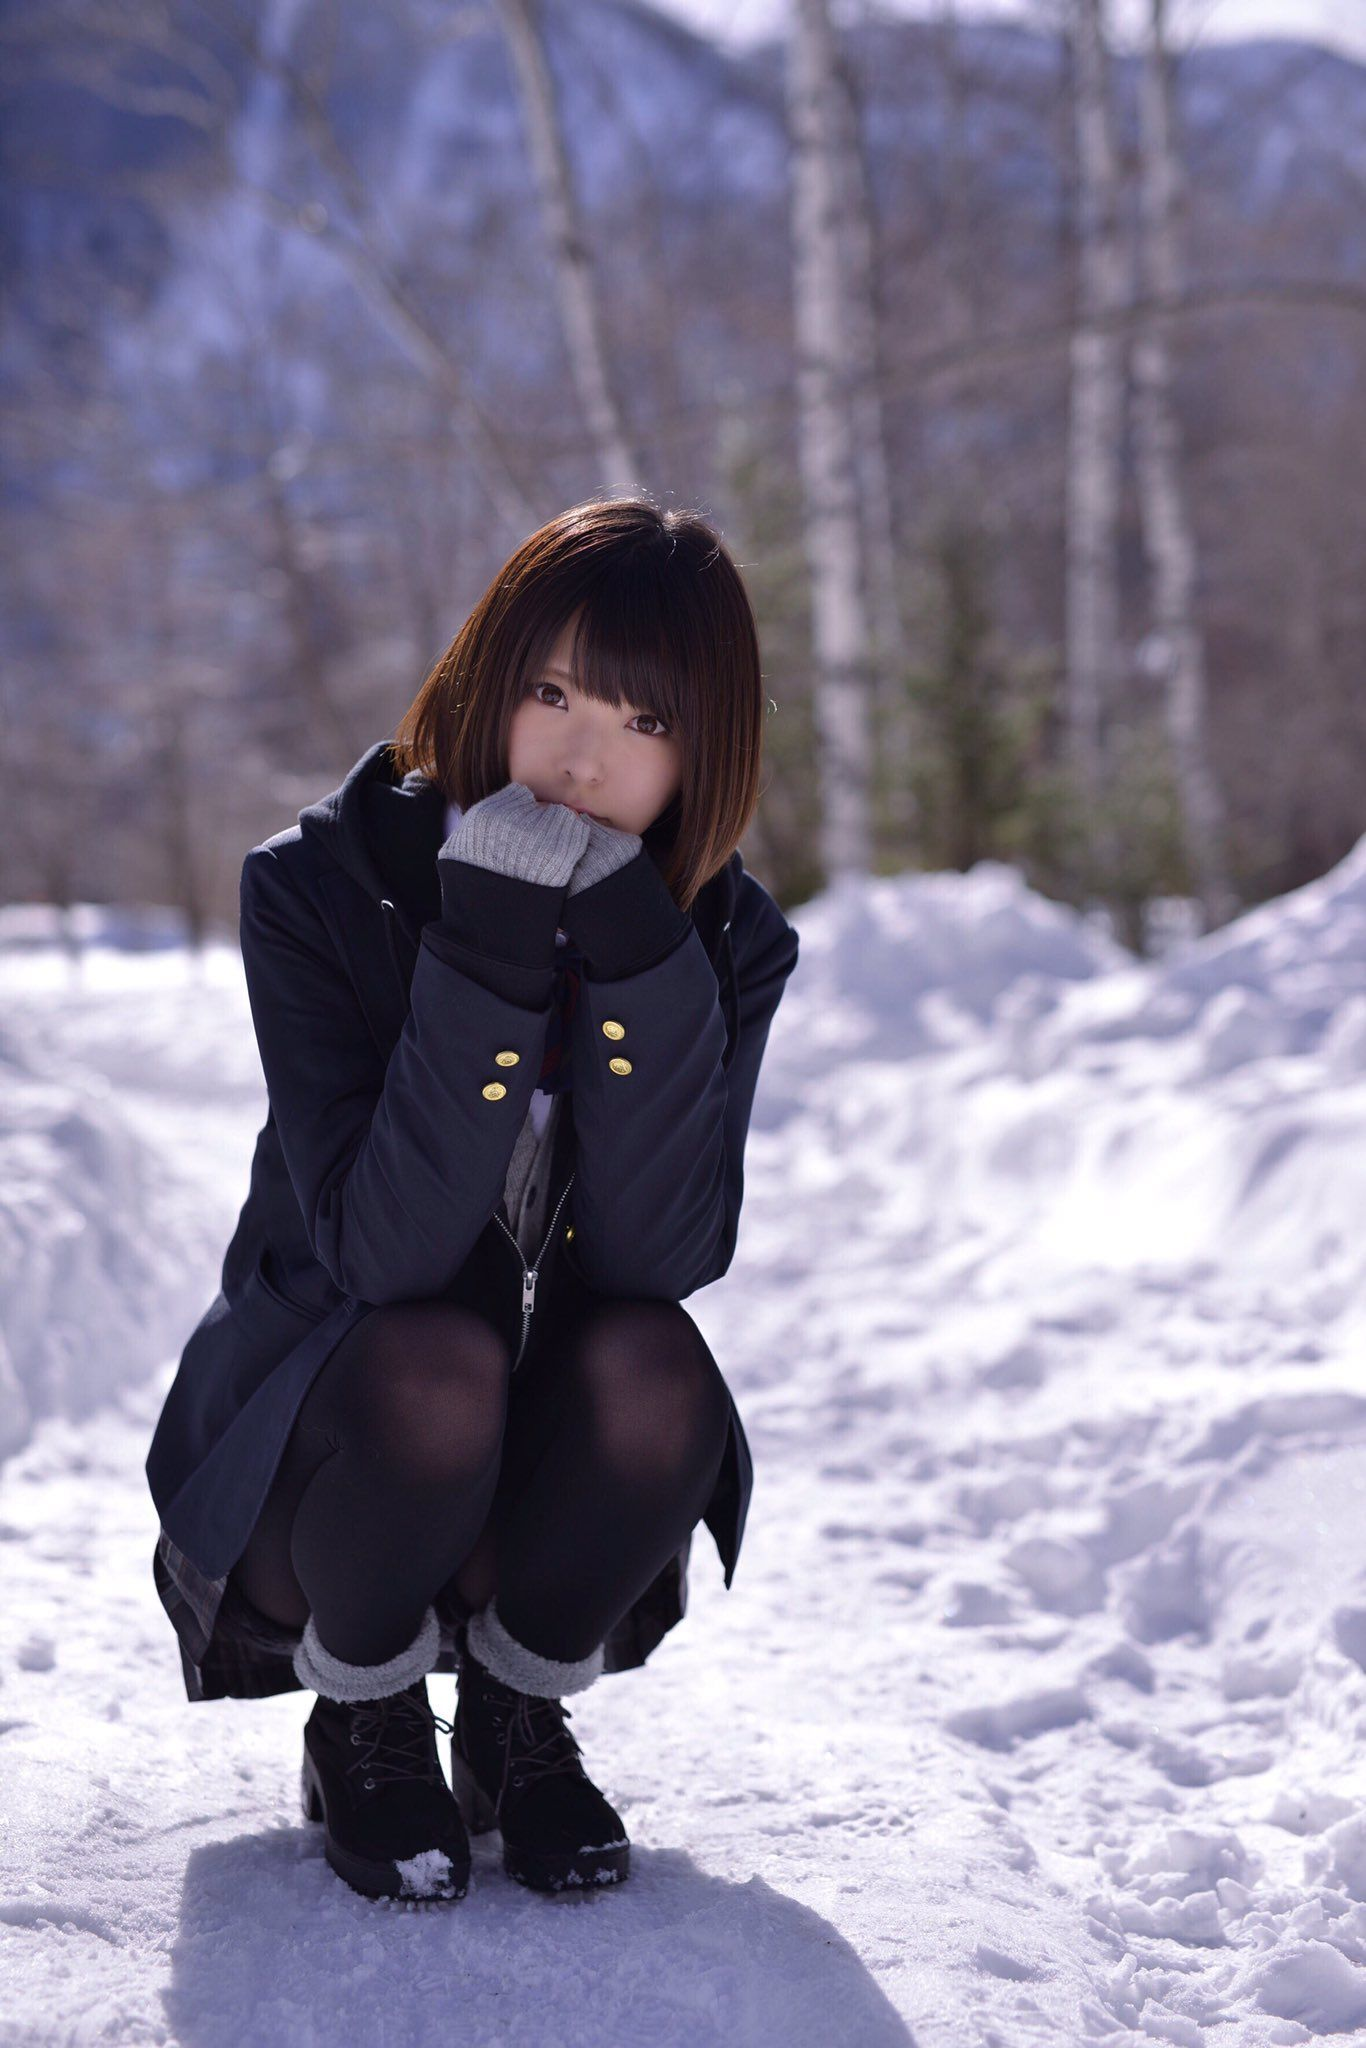 今年的第一場初雪,可以玩雪真高興 #制服美少女 #瀏海》#Cute #Girl #Pretty #Girls #漂亮 #可愛